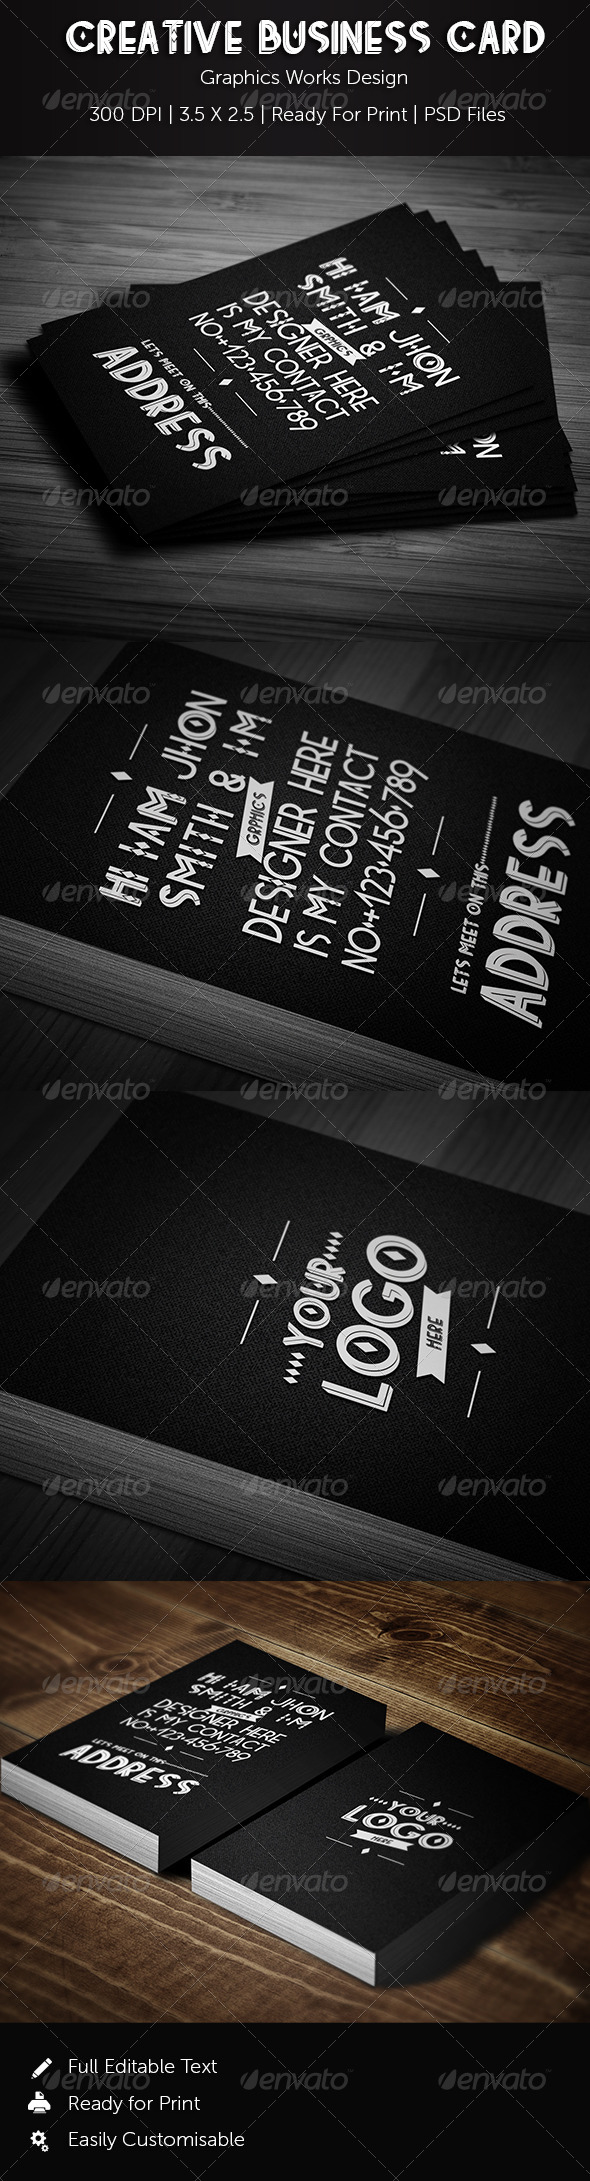 GraphicRiver Creative Business Card 01 8769884